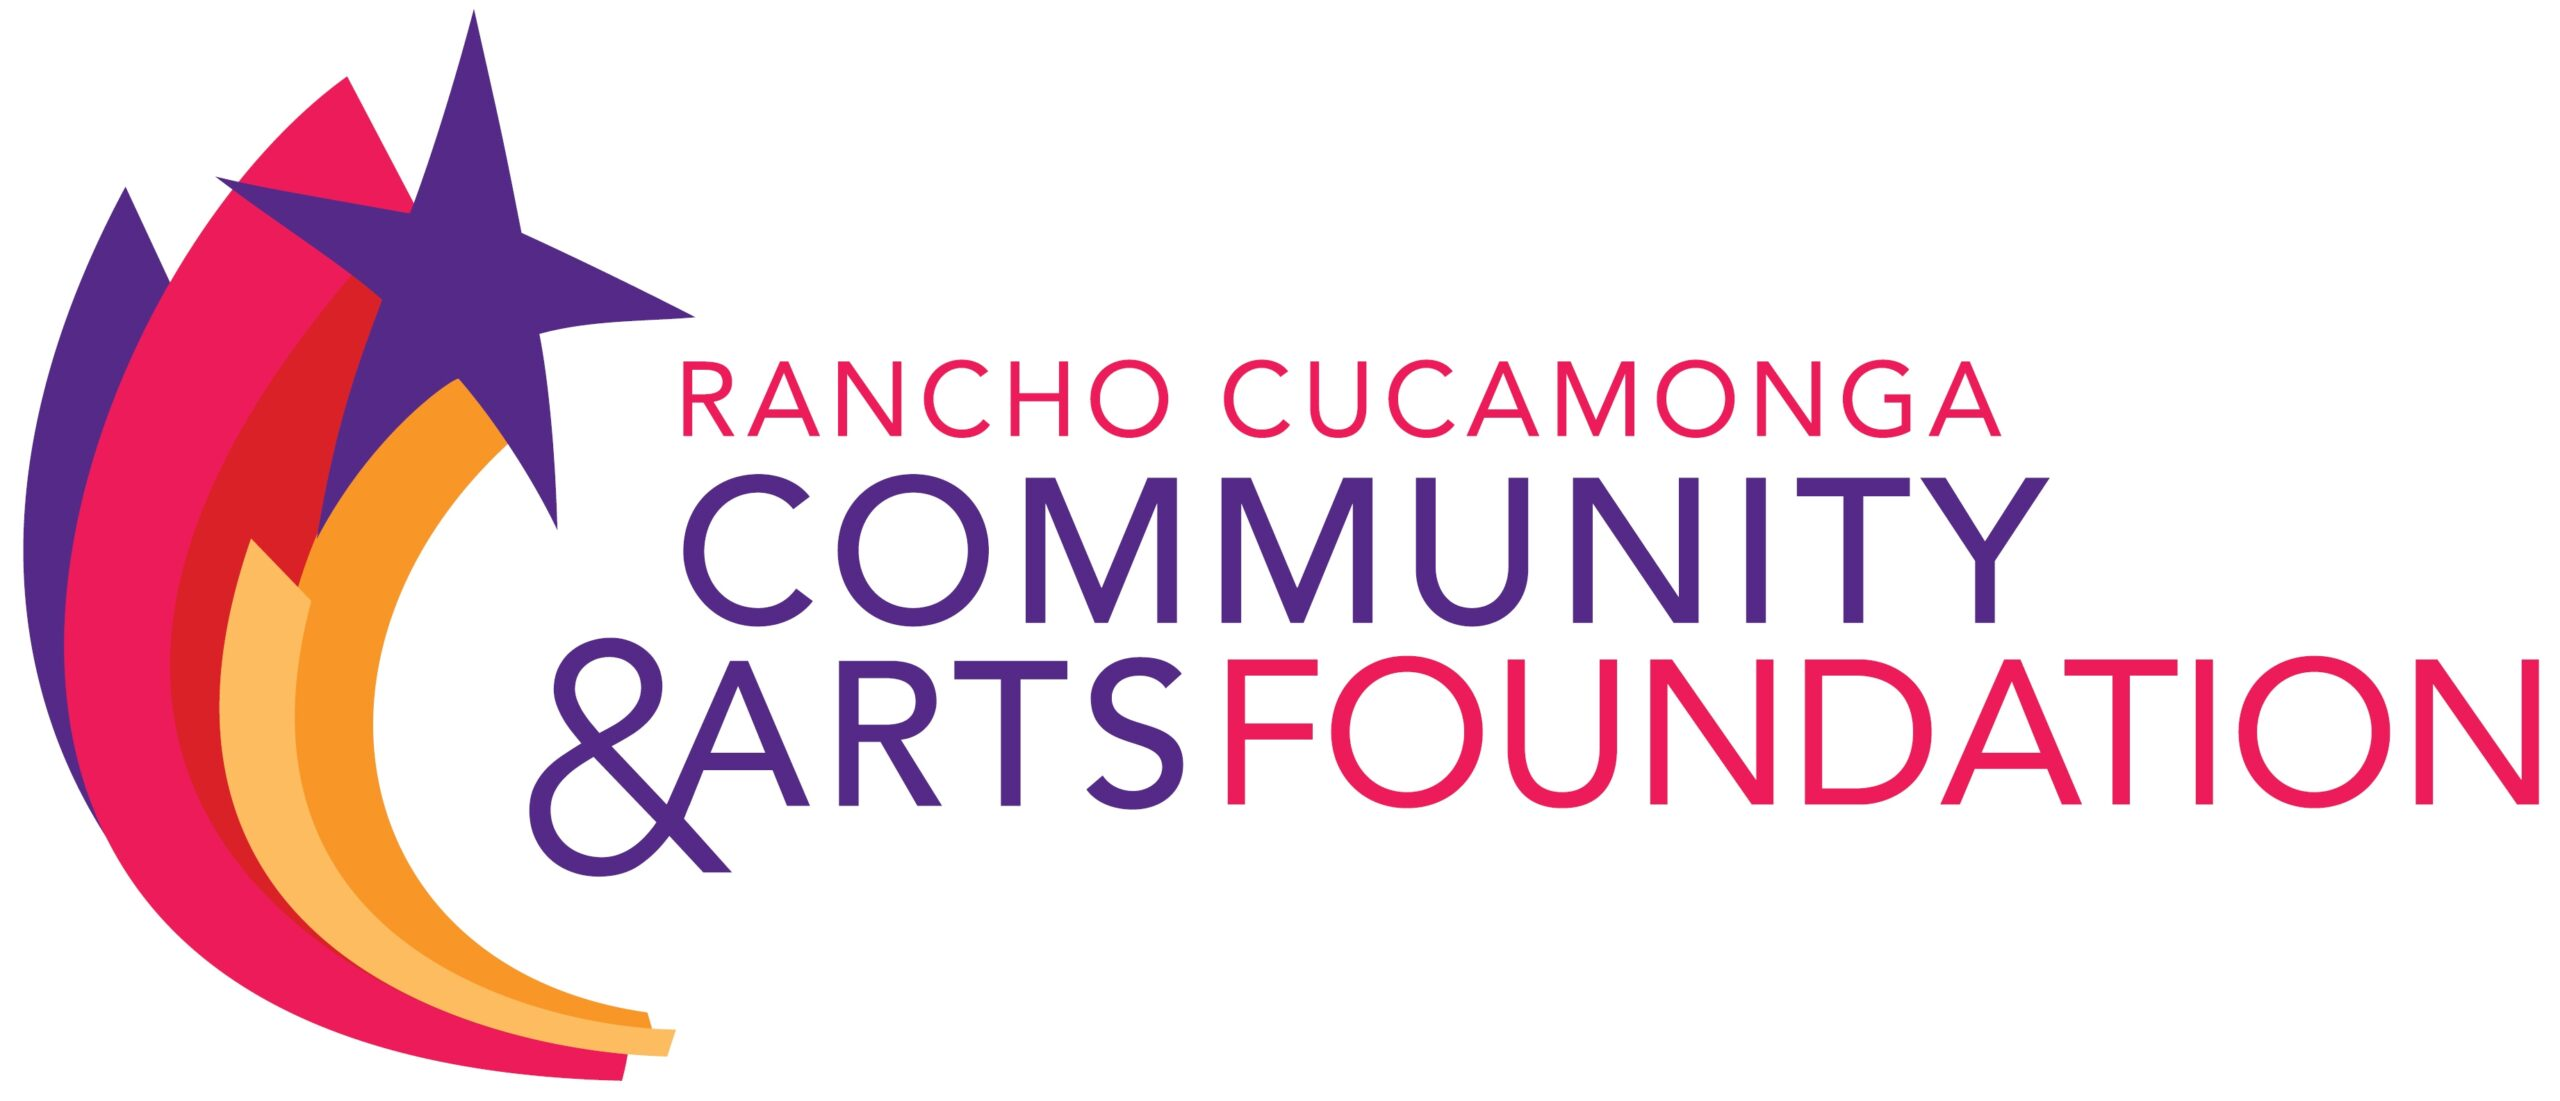 Rancho Cucamonga Community & Arts Foundation